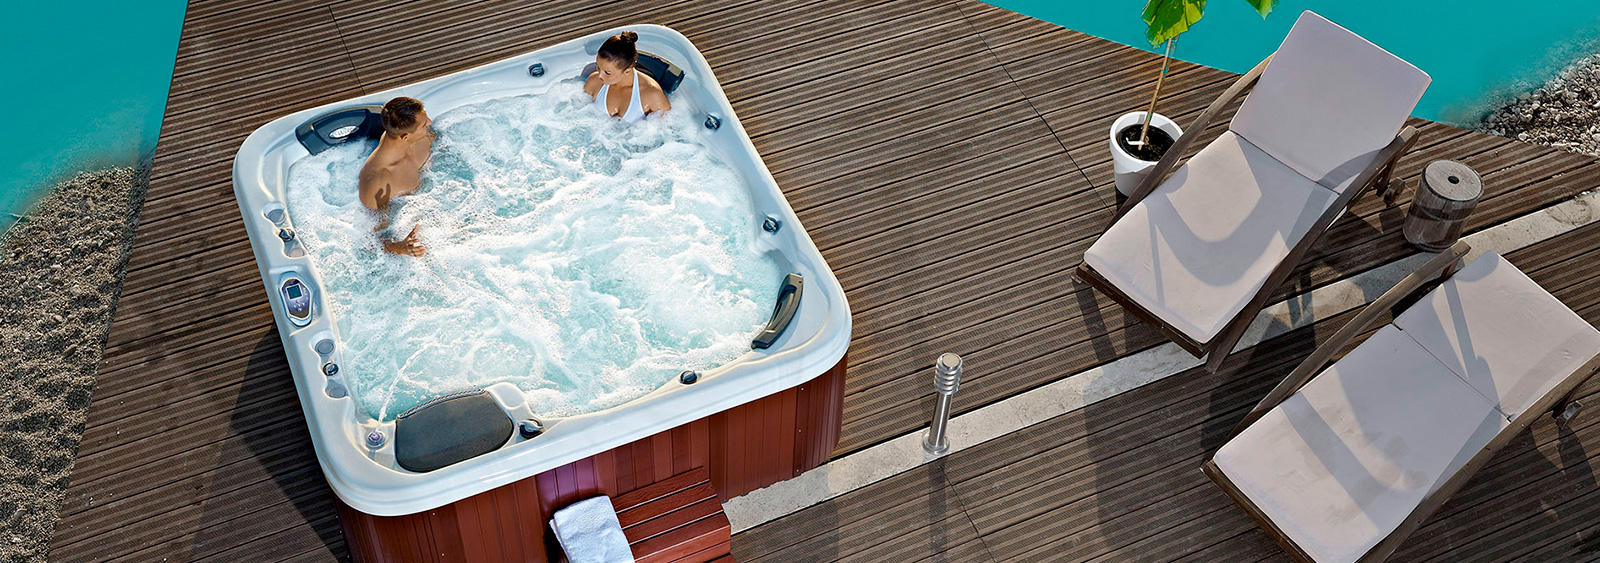 Wellis Hot Tub